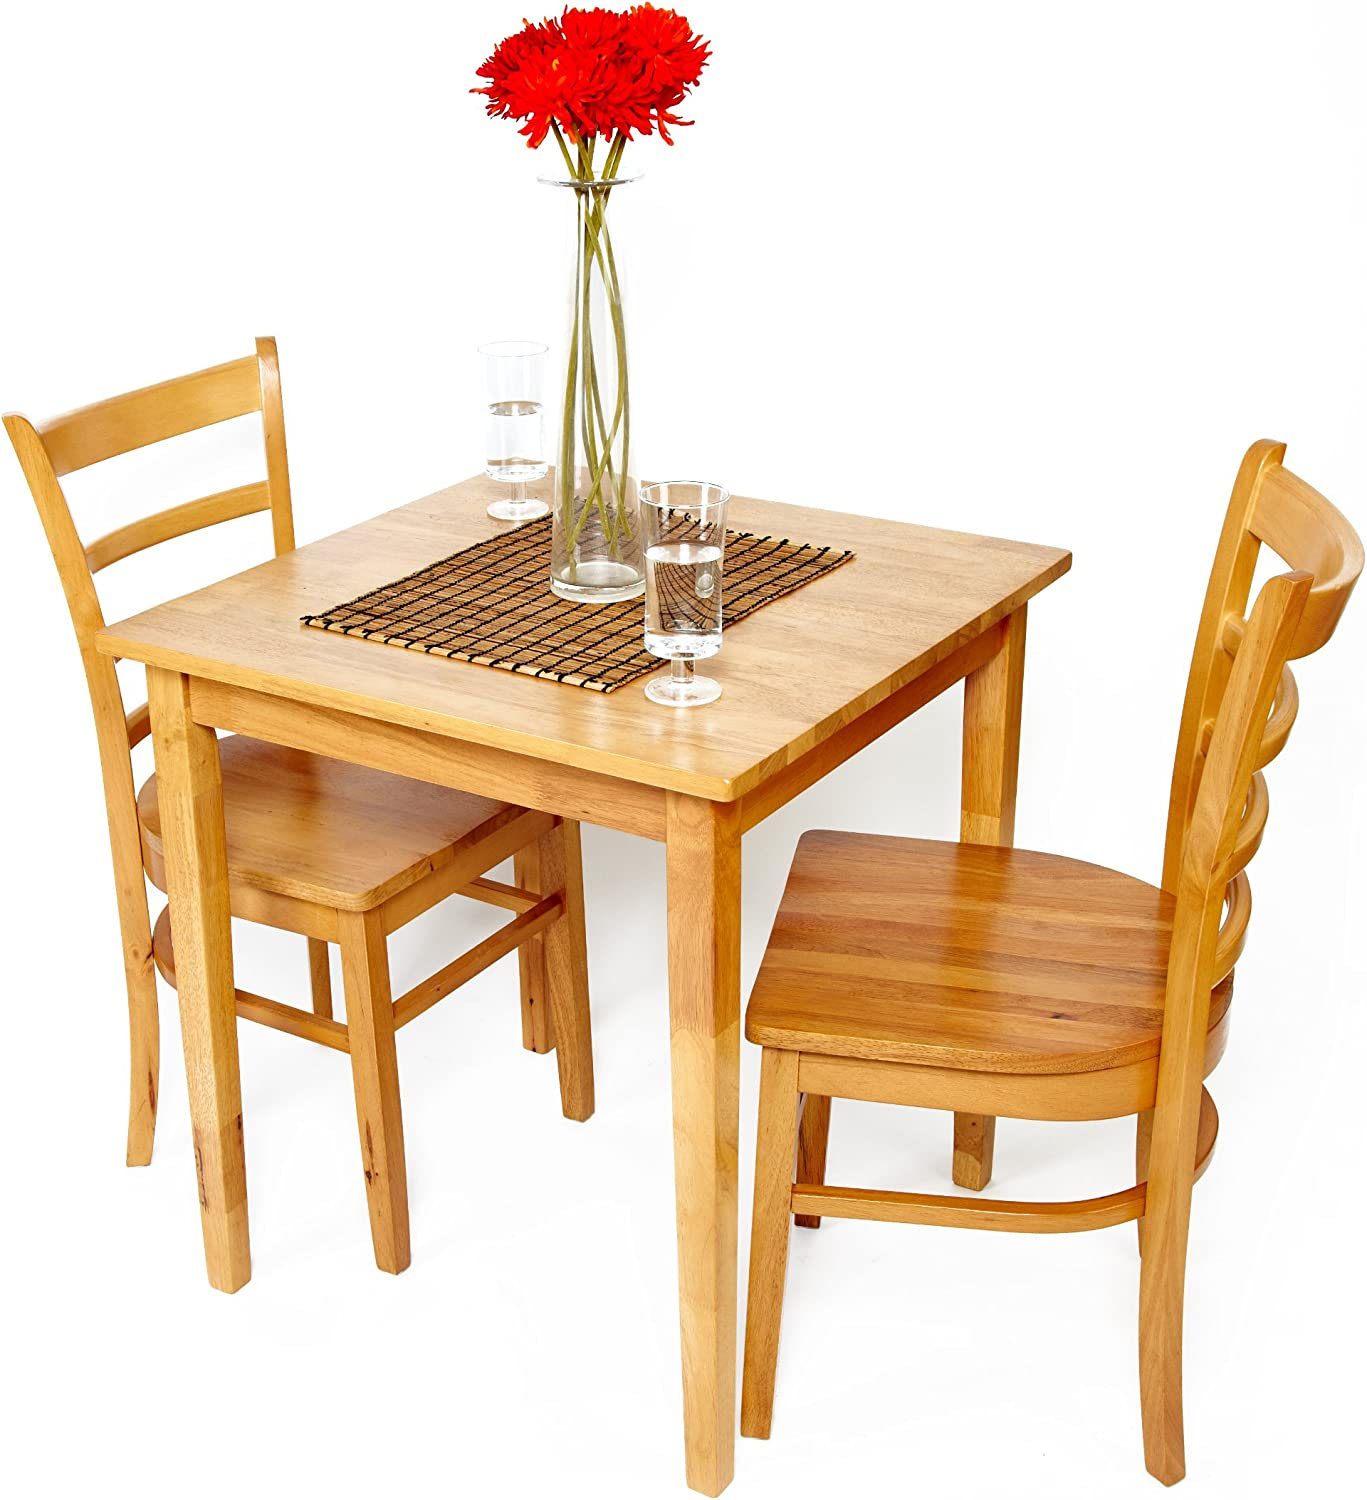 Bistro cafe dining kitchen tables and chair set